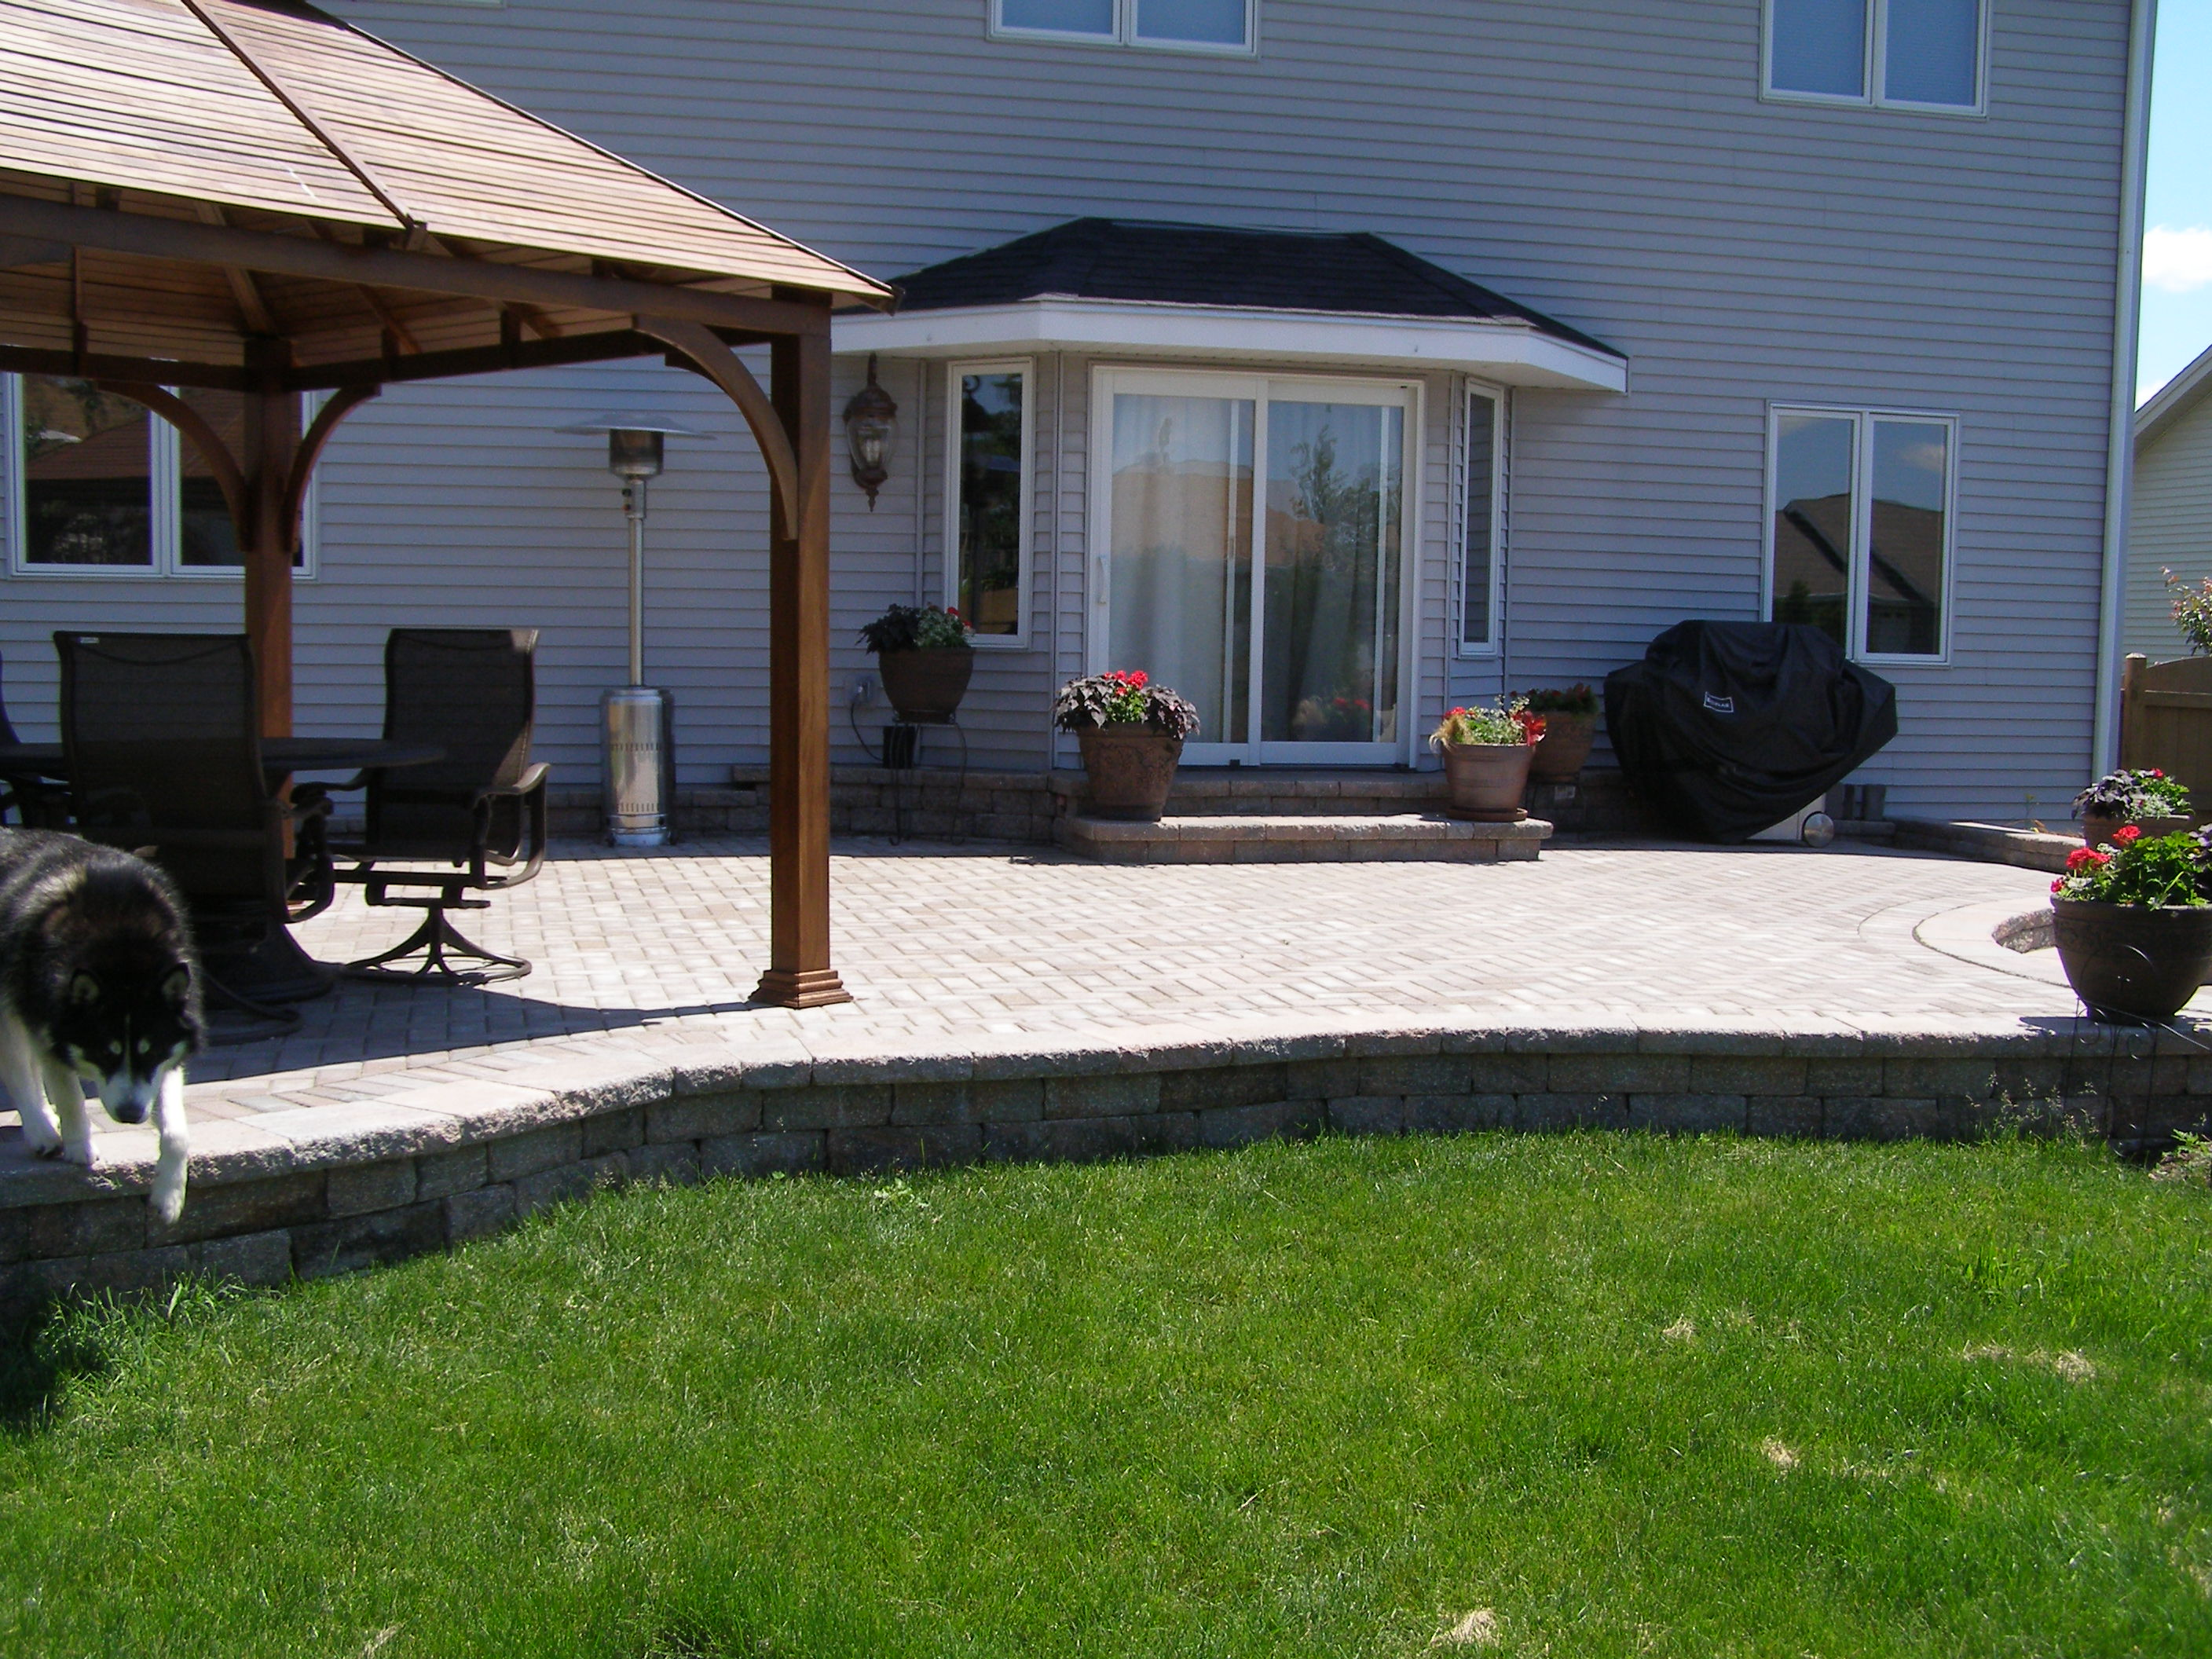 This Rockford patio is complete with a shade structure for outdoor entertaining.